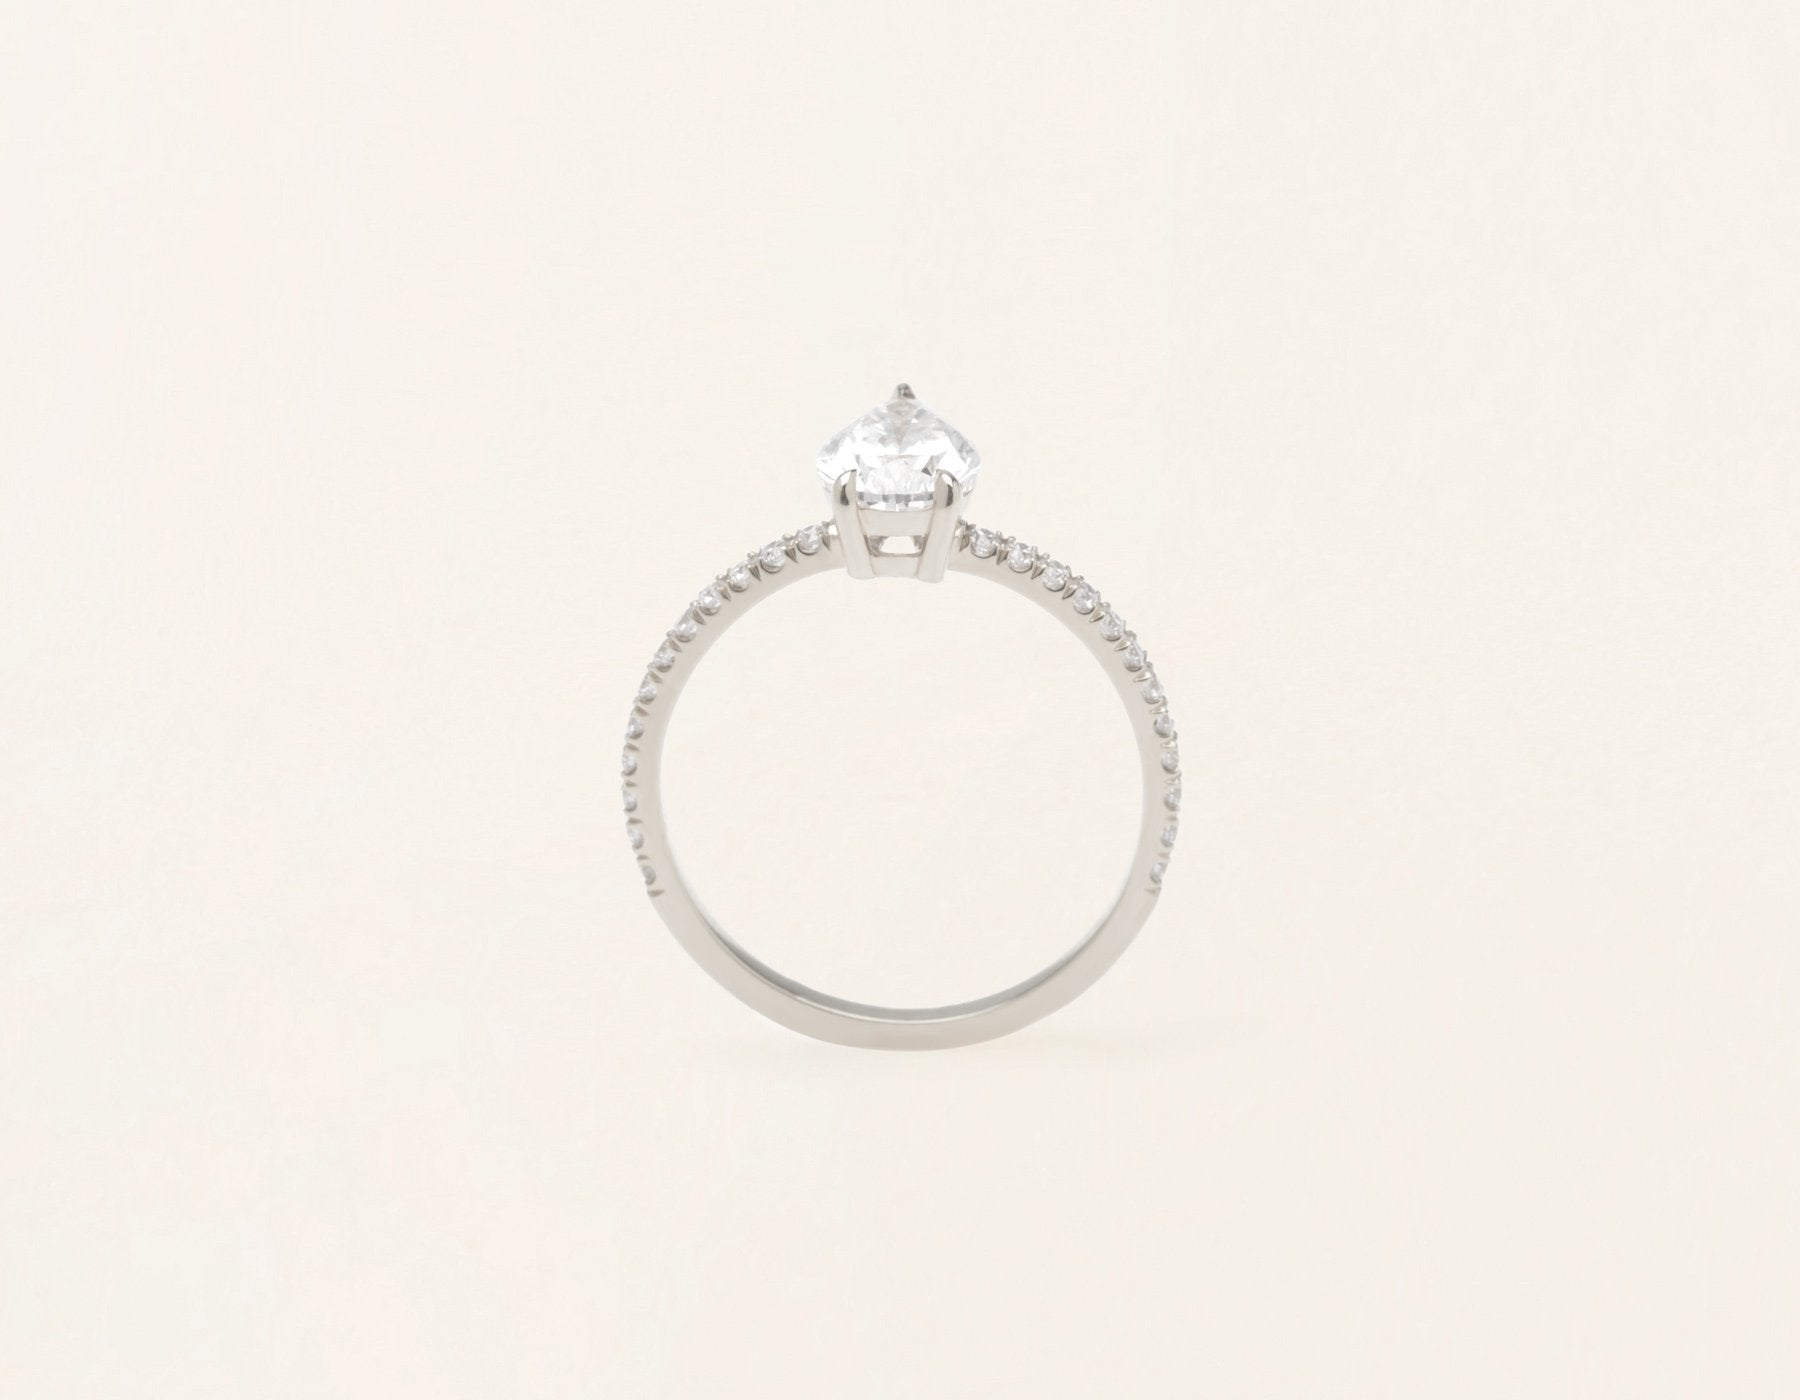 Vrai & Oro 18k solid white gold Diamond engagement ring The pear pave simple classic band